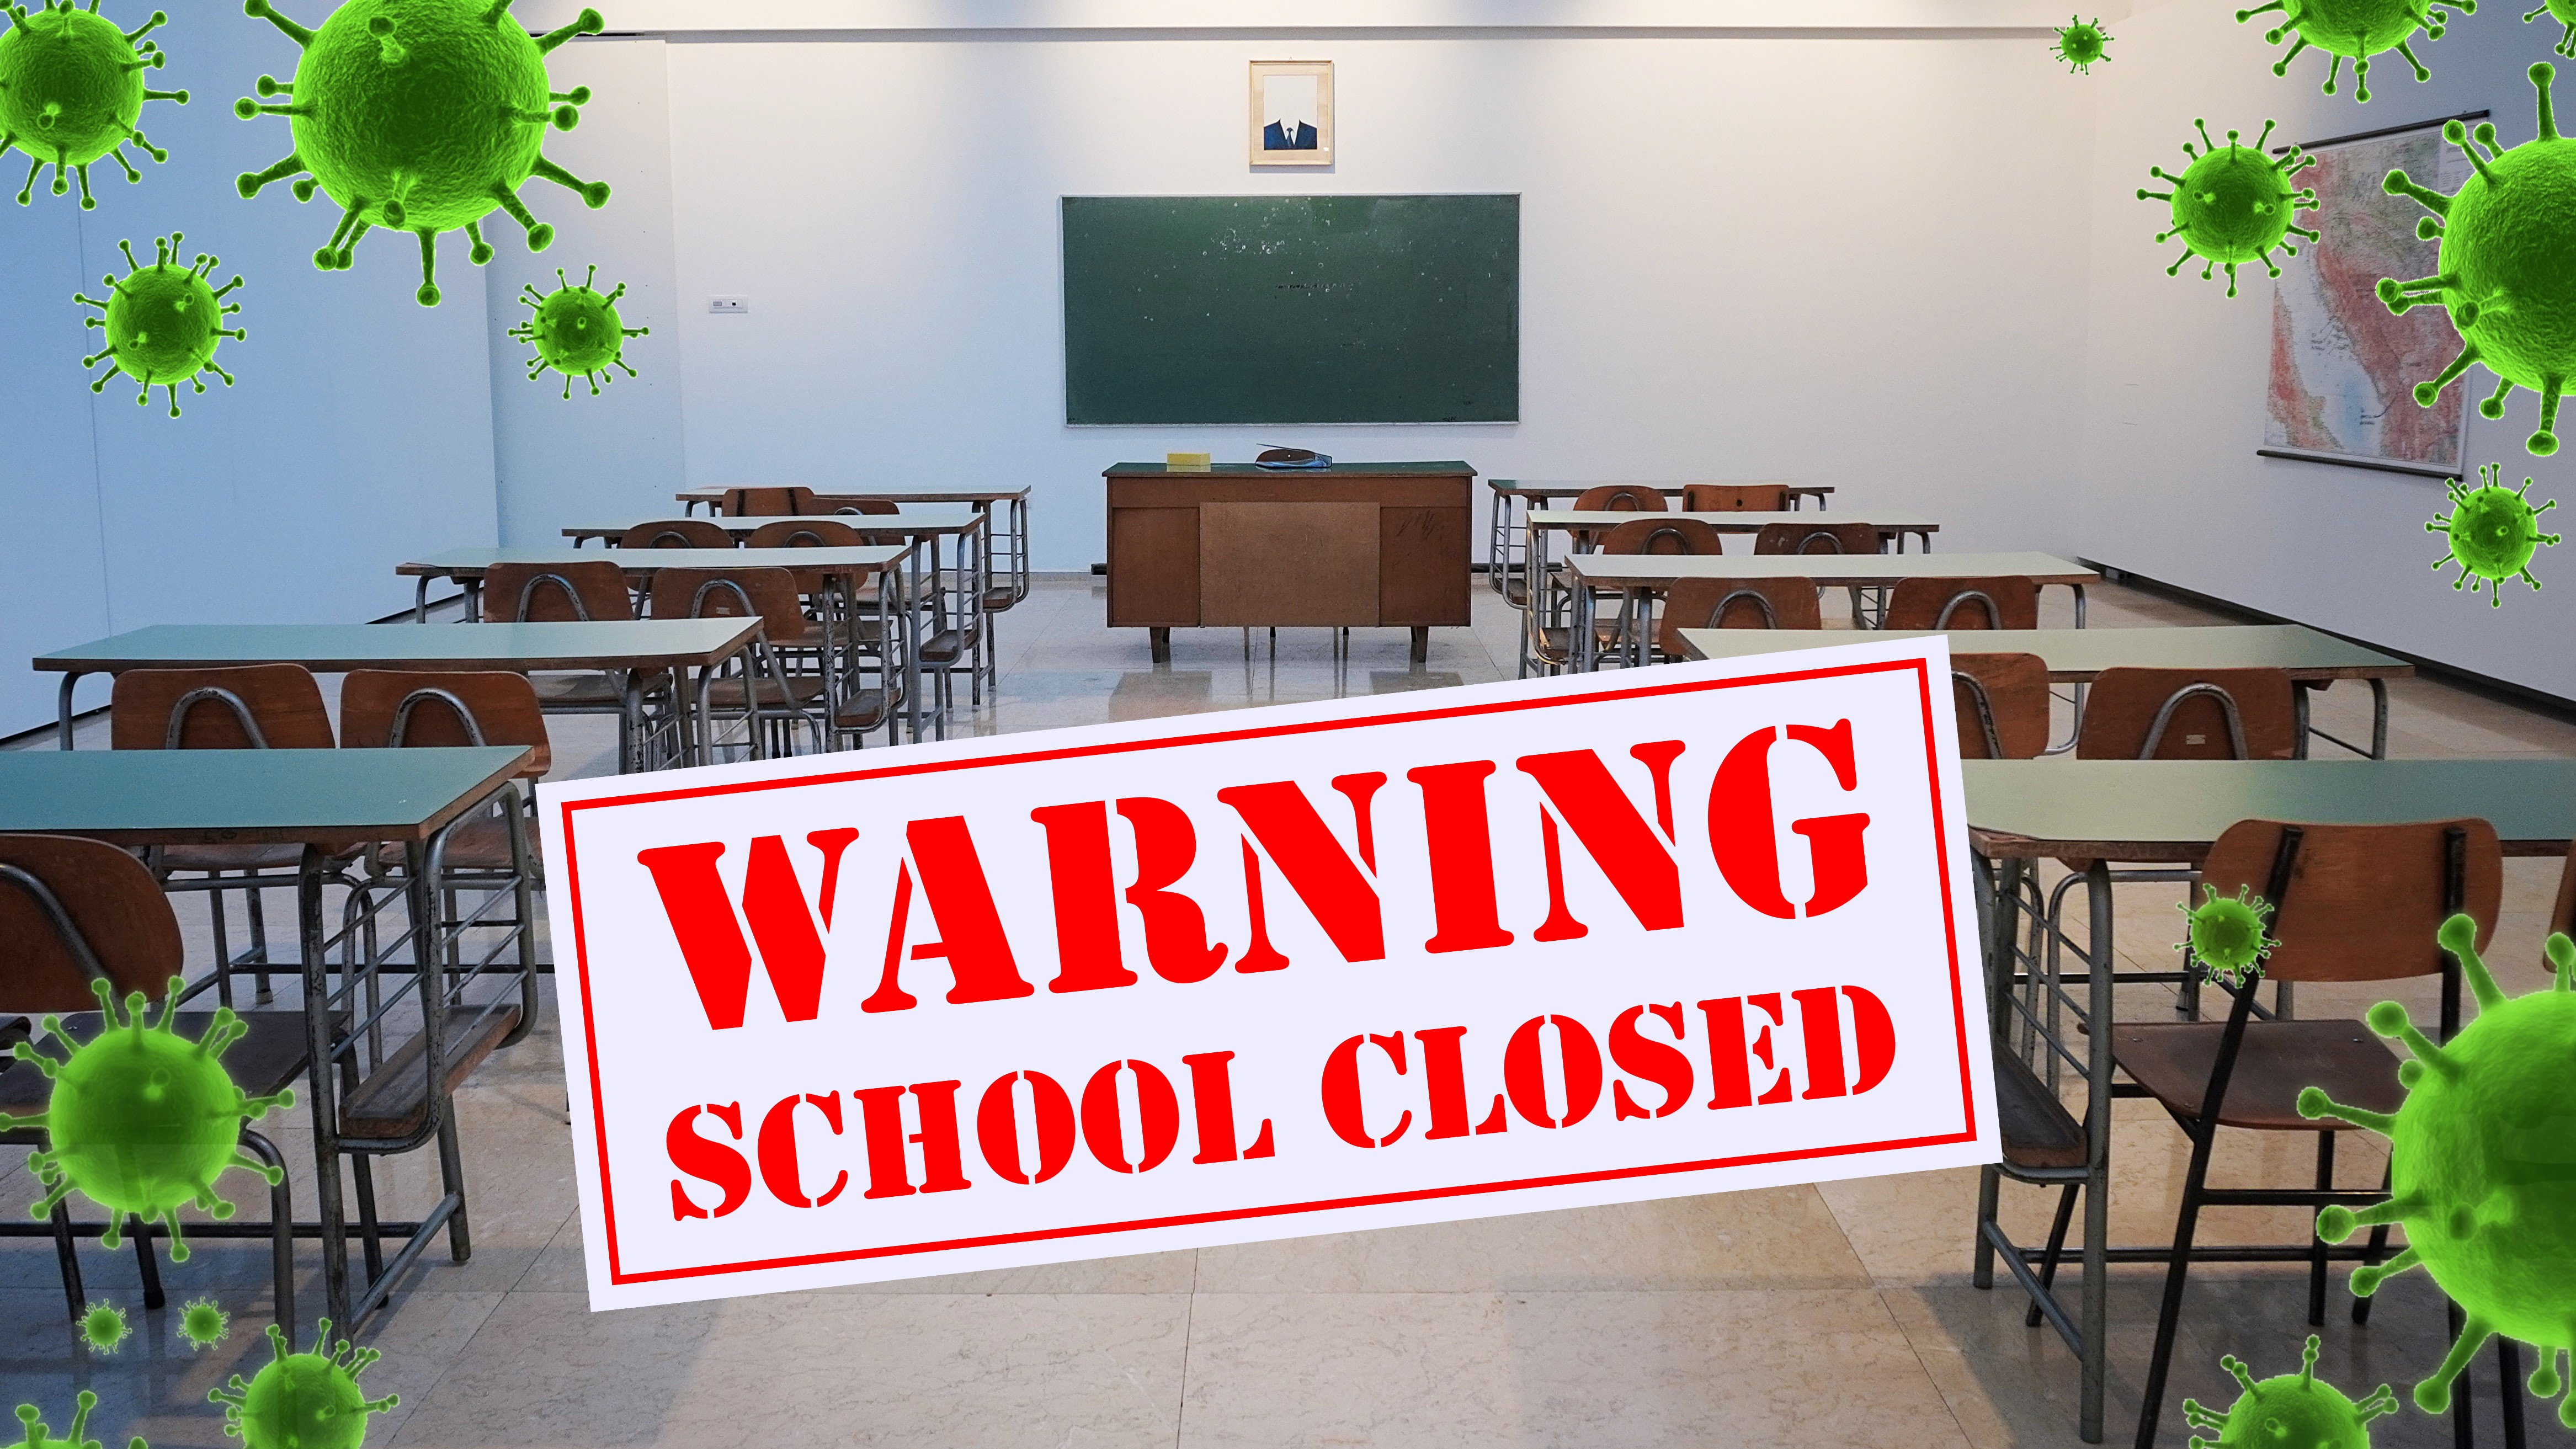 Warning School Closed, empty classroom image